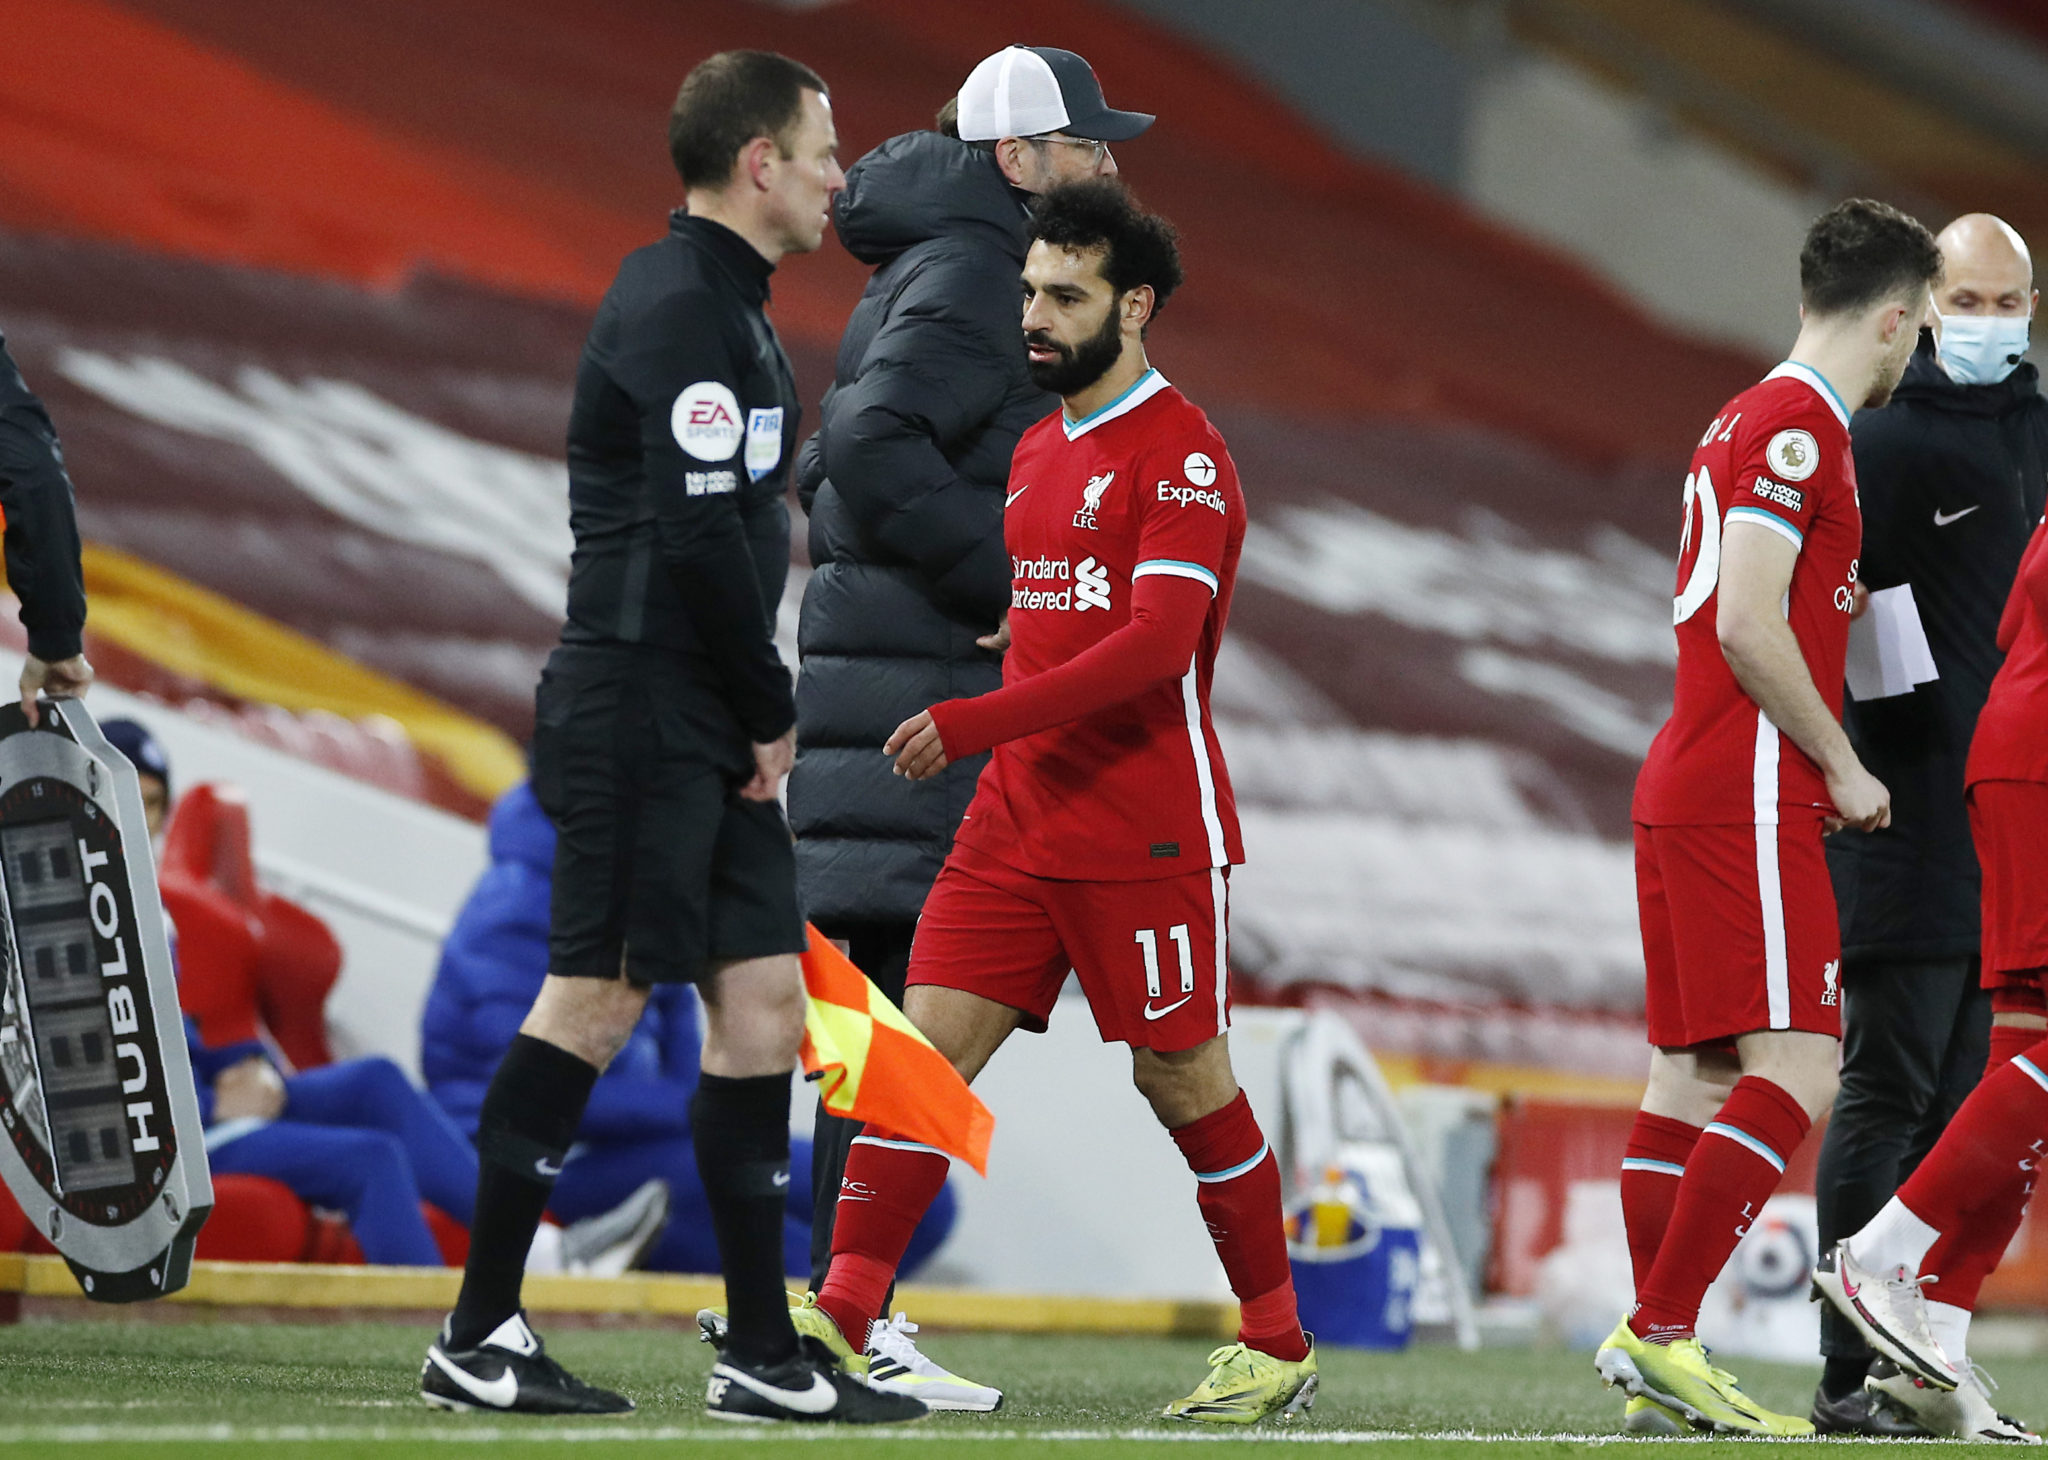 Mo Salah is substituted during Liverpool's loss to Chelsea